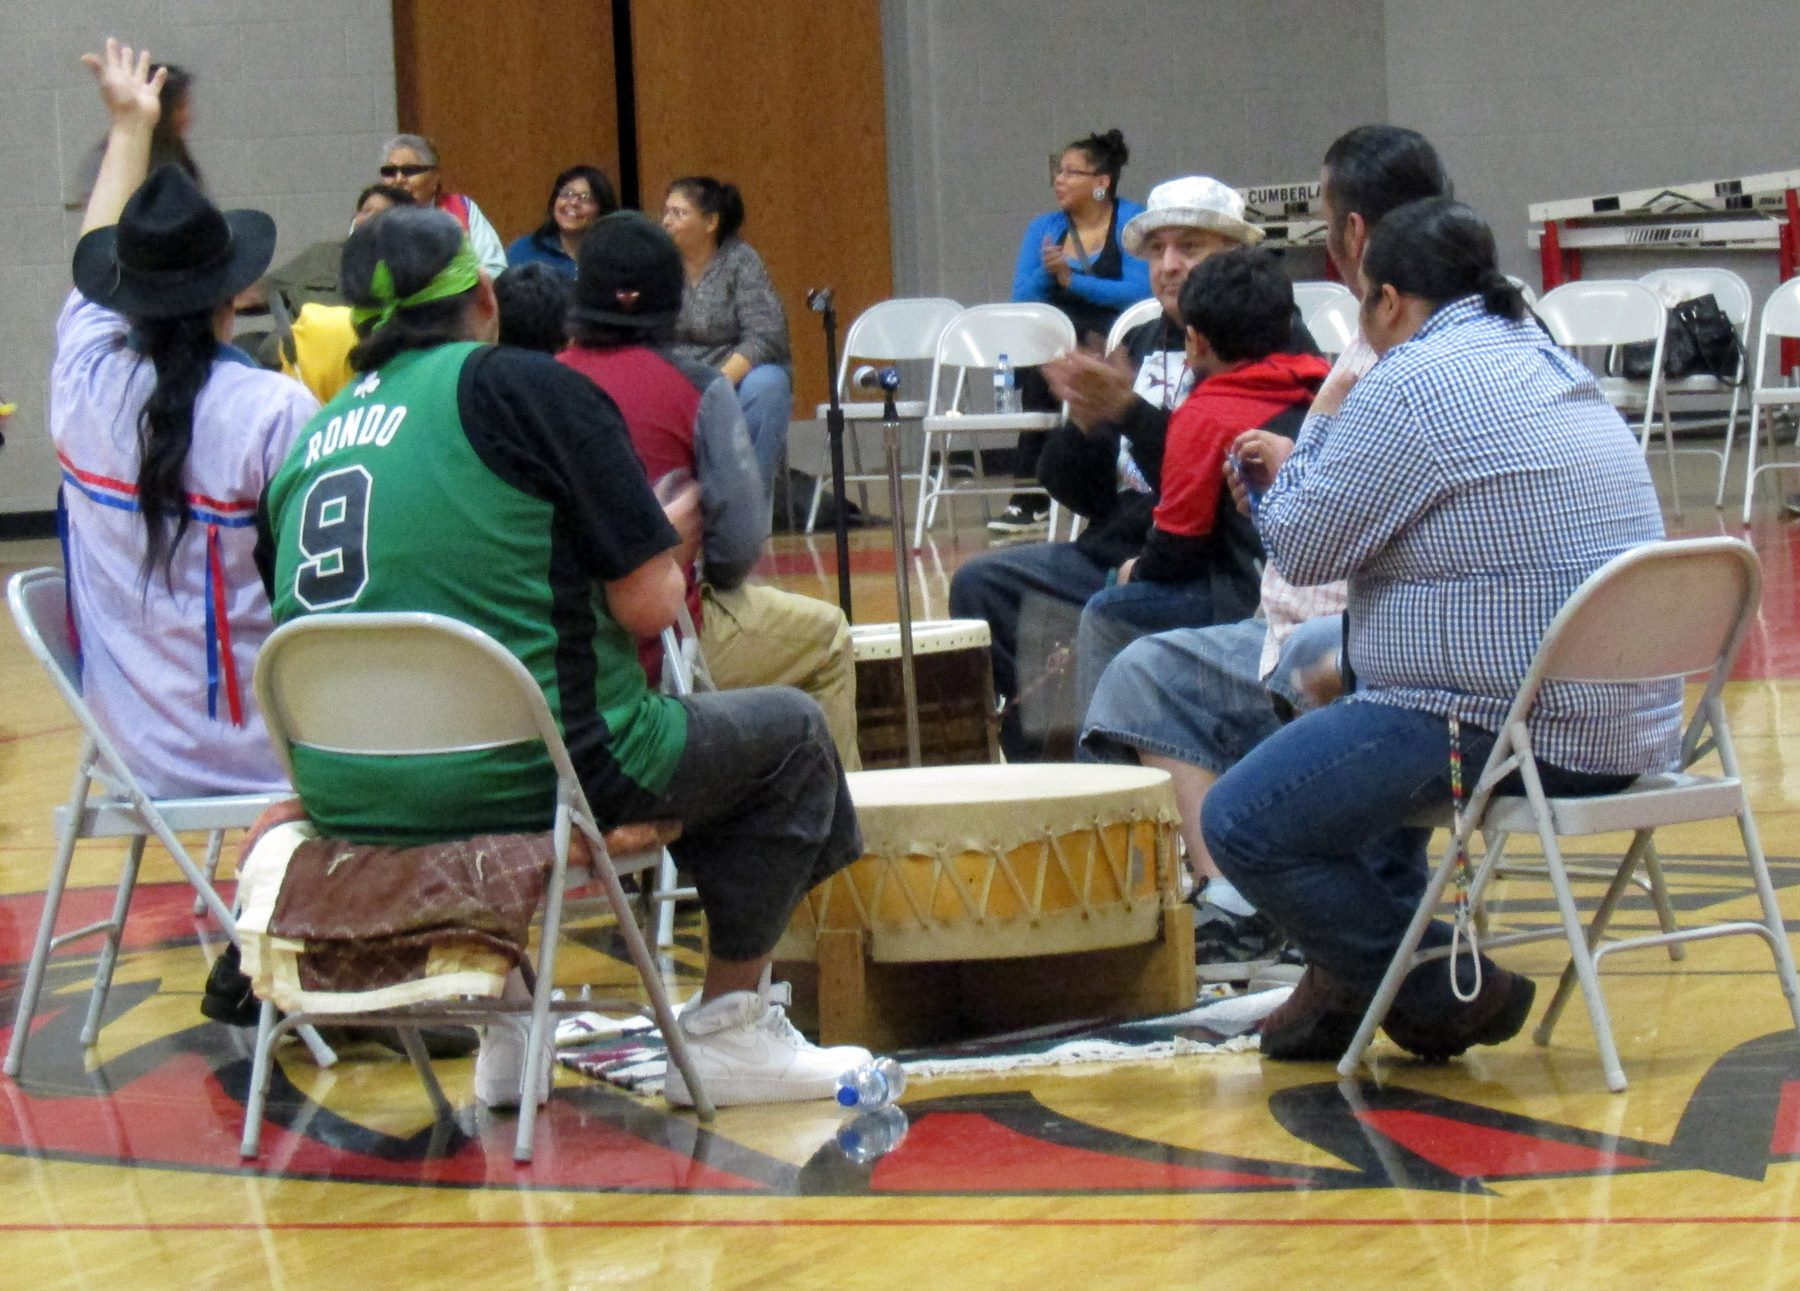 St. Croix Chippewa Tribe seeks to disenroll as many as 16 people